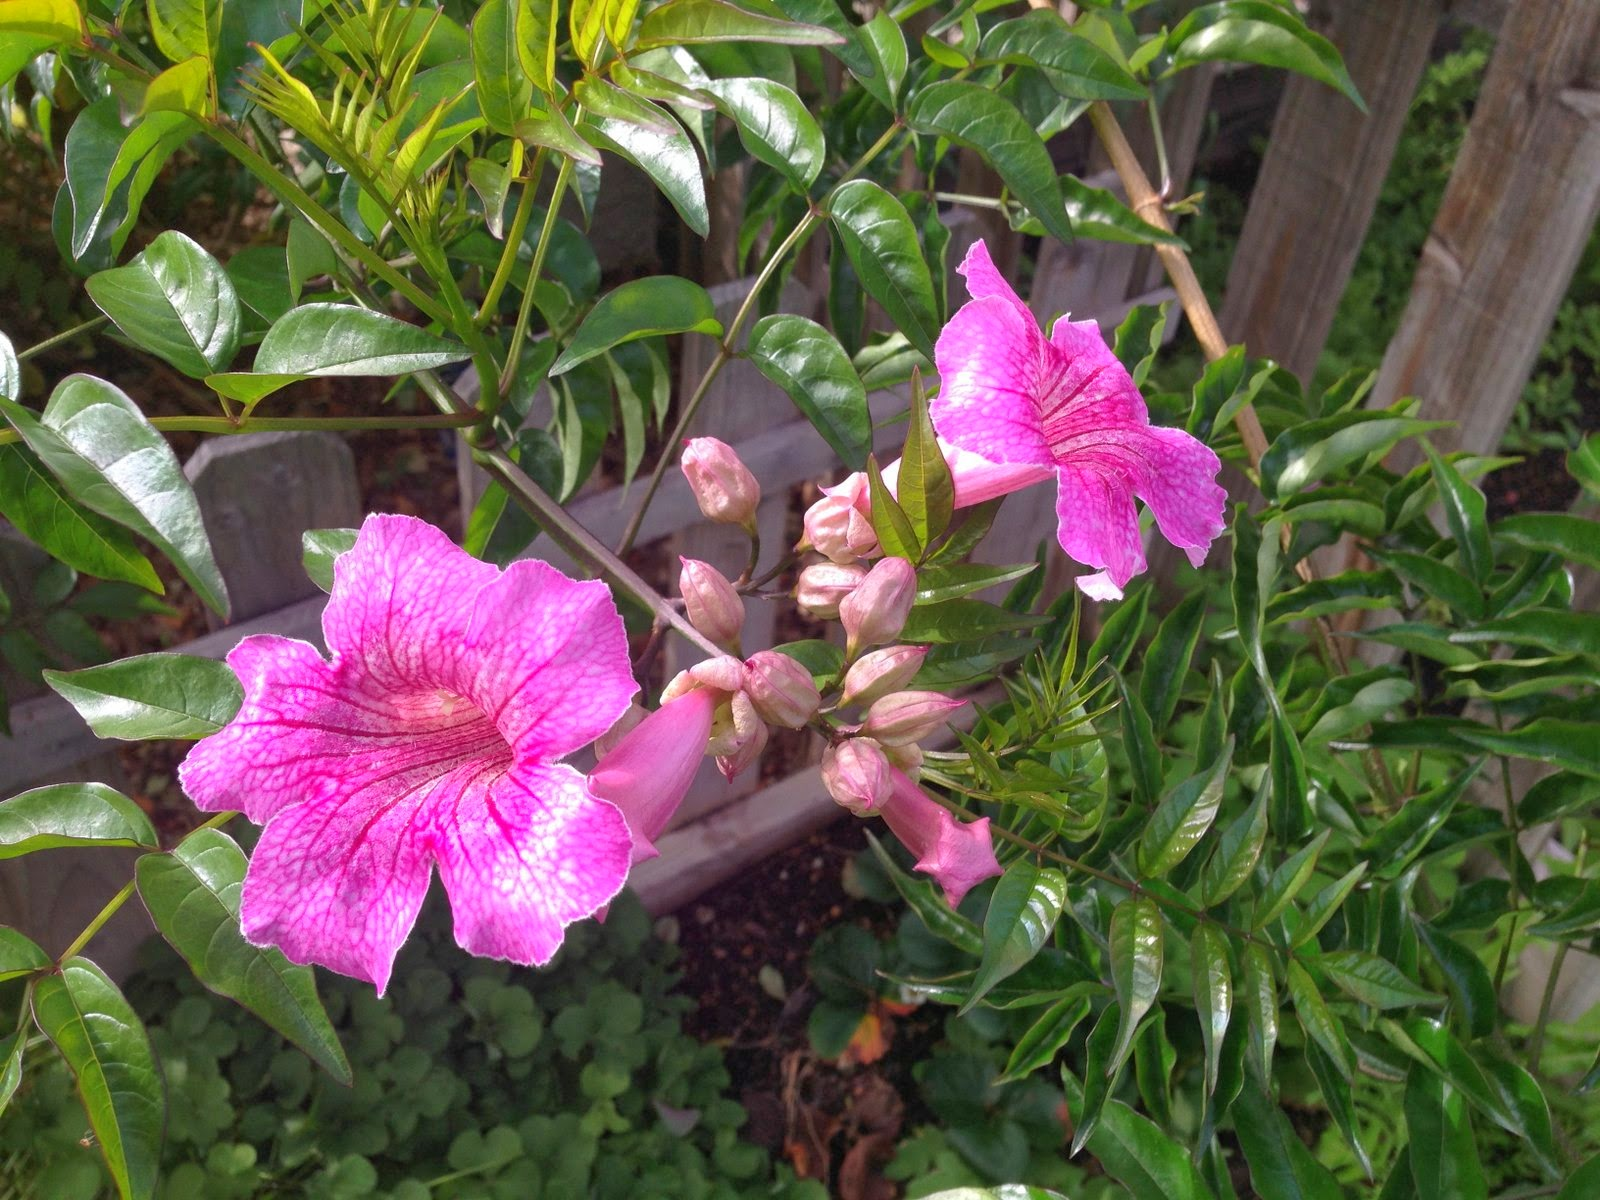 RAMBLINGS FROM A DESERT GARDEN Pruning and Blooms in the Spring Garden